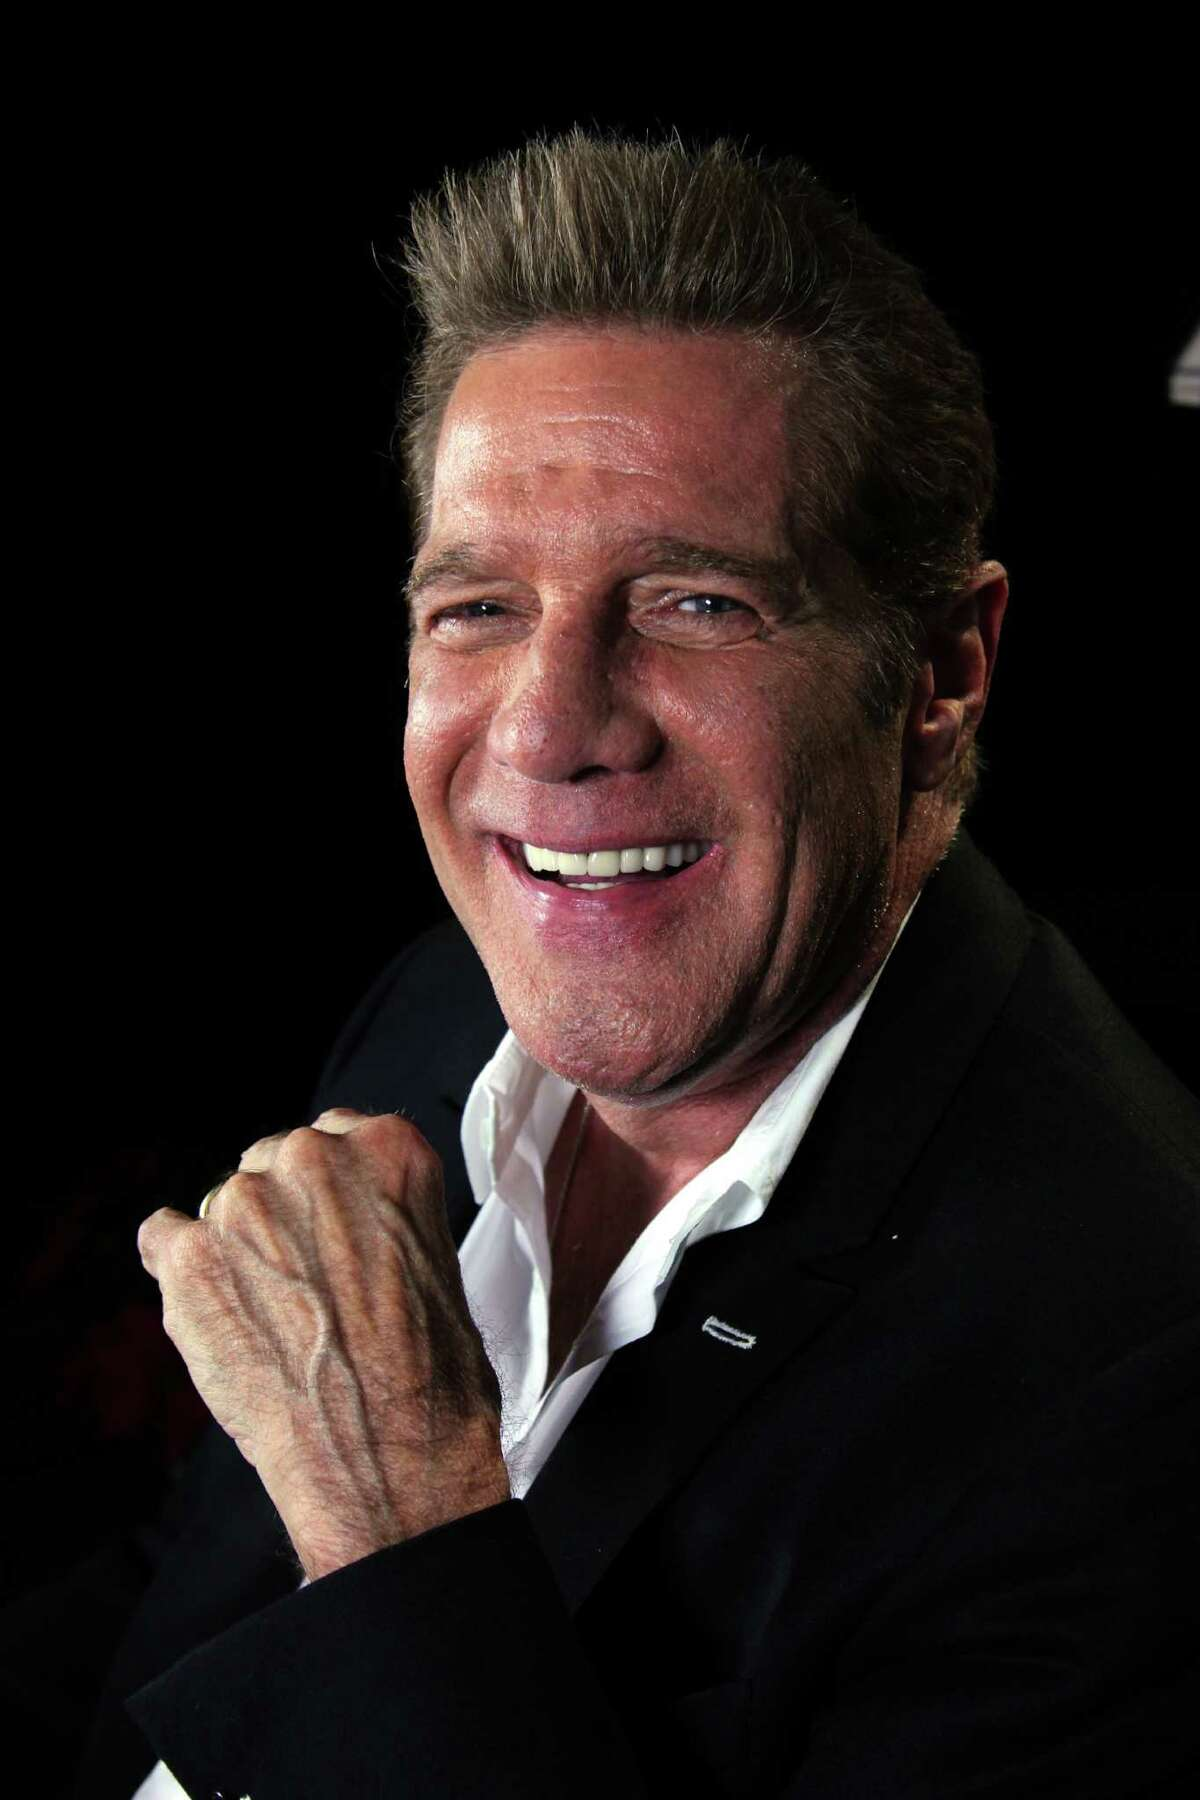 FILE - In this May 7, 2012, photo photo, musician Glenn Frey smiles in New York. Frey, who co-founded the Eagles and with Don Henley became one of history's most successful songwriting teams with such hits as